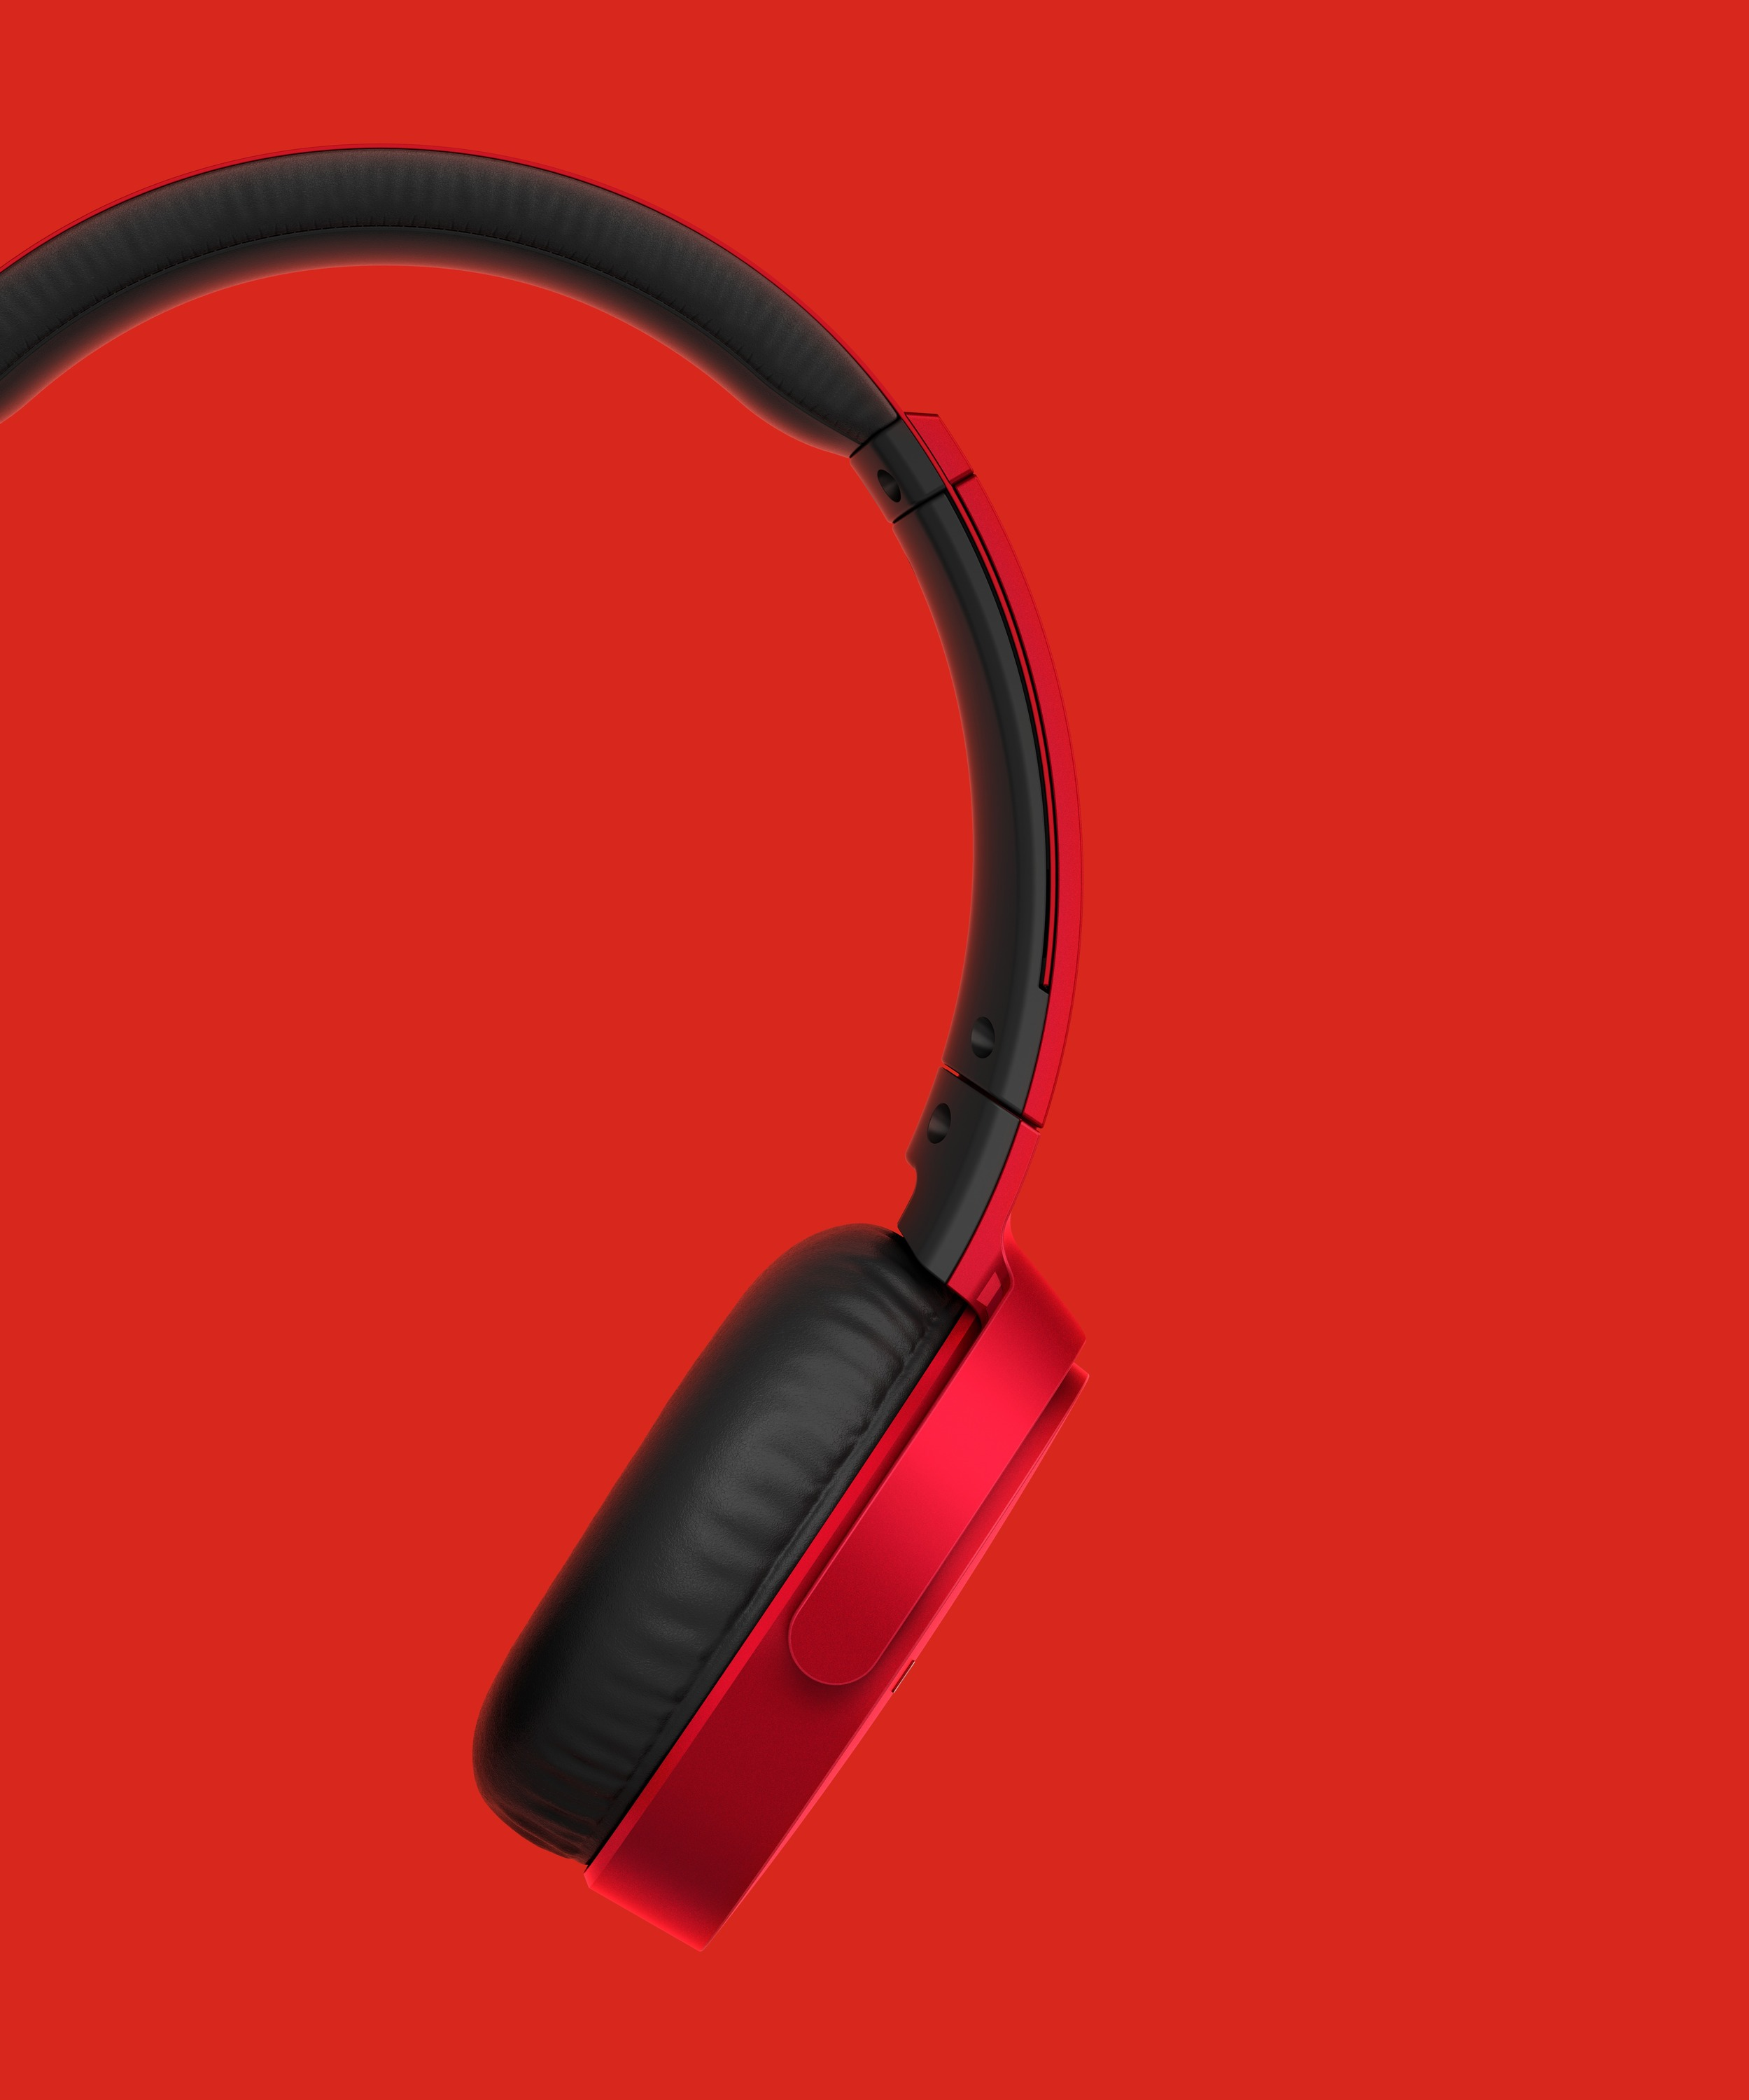 Casque Audio Sony Mdrxb650btrce7 Darty Mdr Xb650btr Red Images Produit